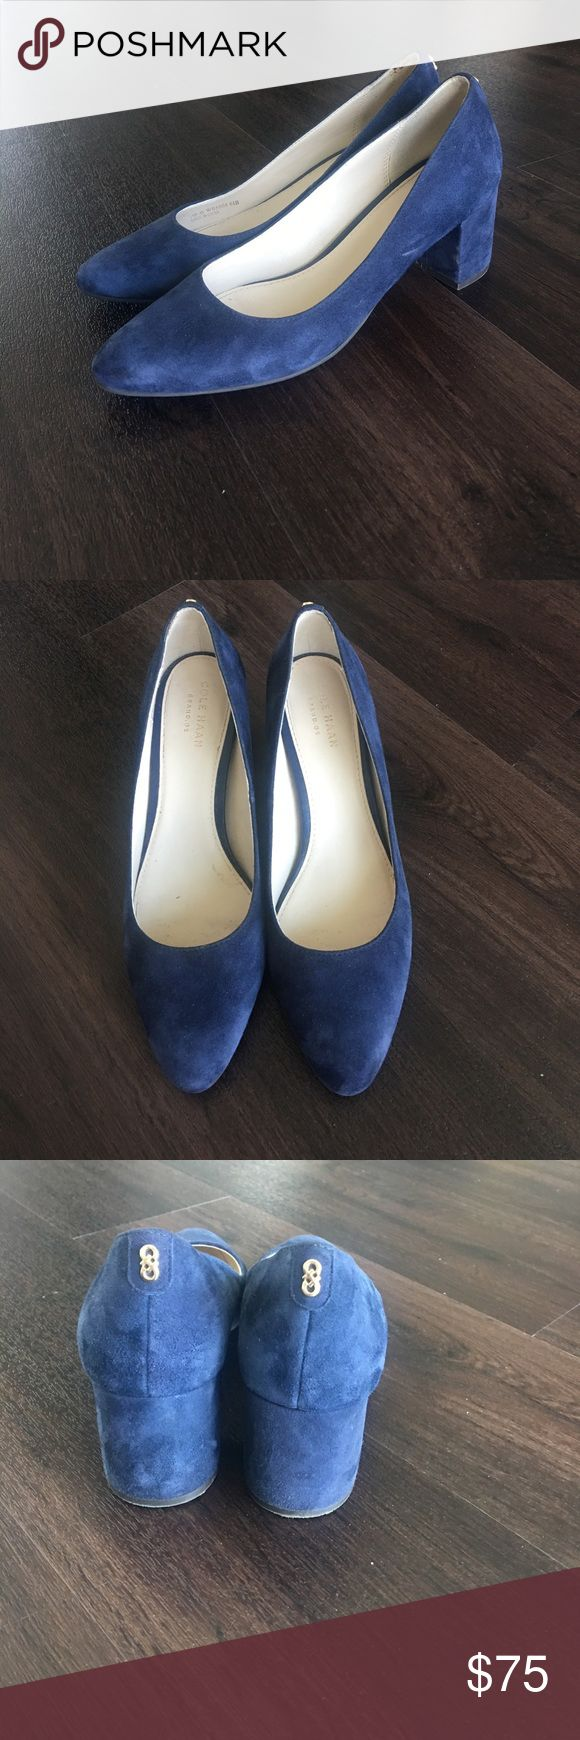 Cole haan block heel Claudine pump About 2 1/4 inches heels . Navy suede. Worn less than 5 times. Claudine pump Cole Haan Shoes Heels